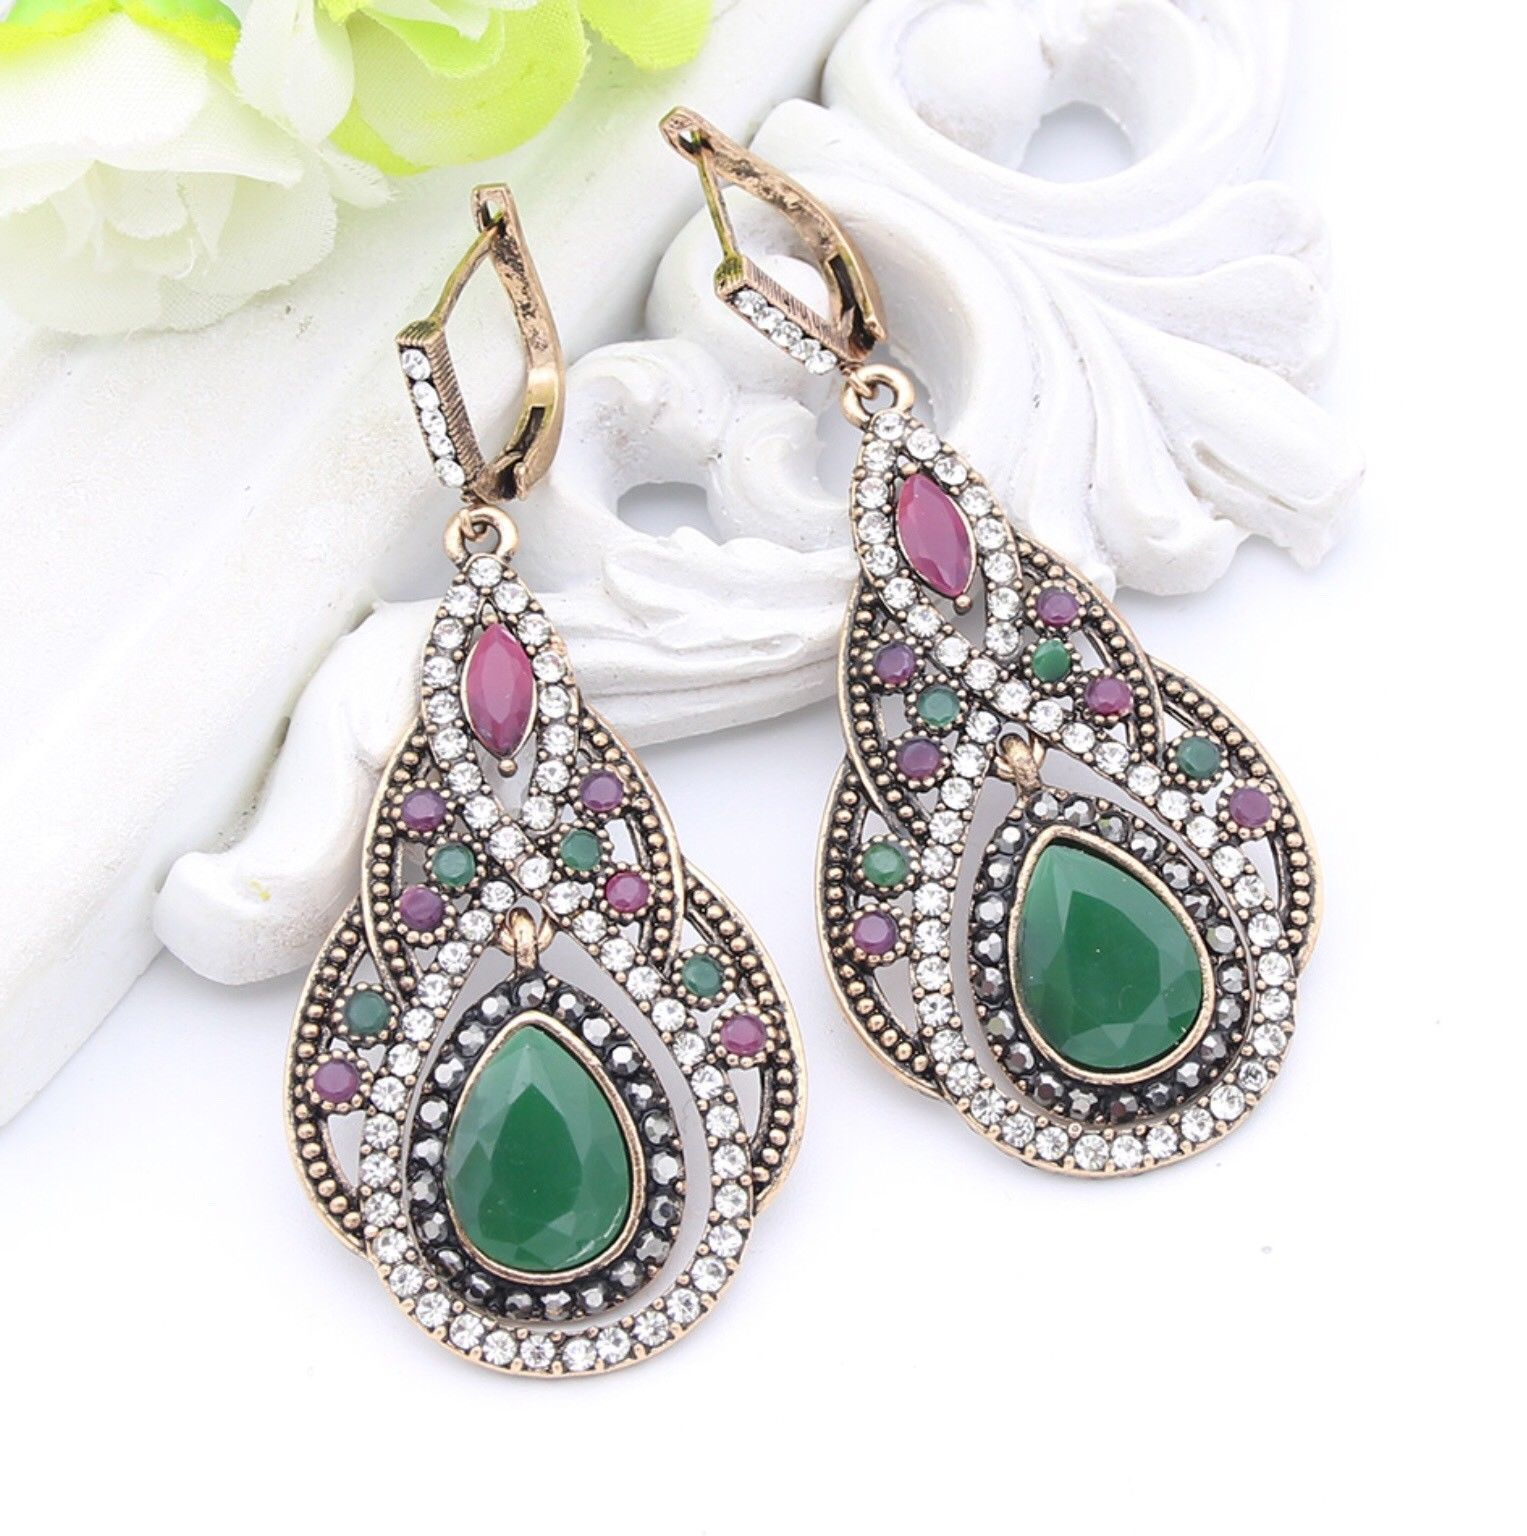 Womens Turkish Earring Hook Jewelry Green Stone Islamic Vintage India Retro Gift